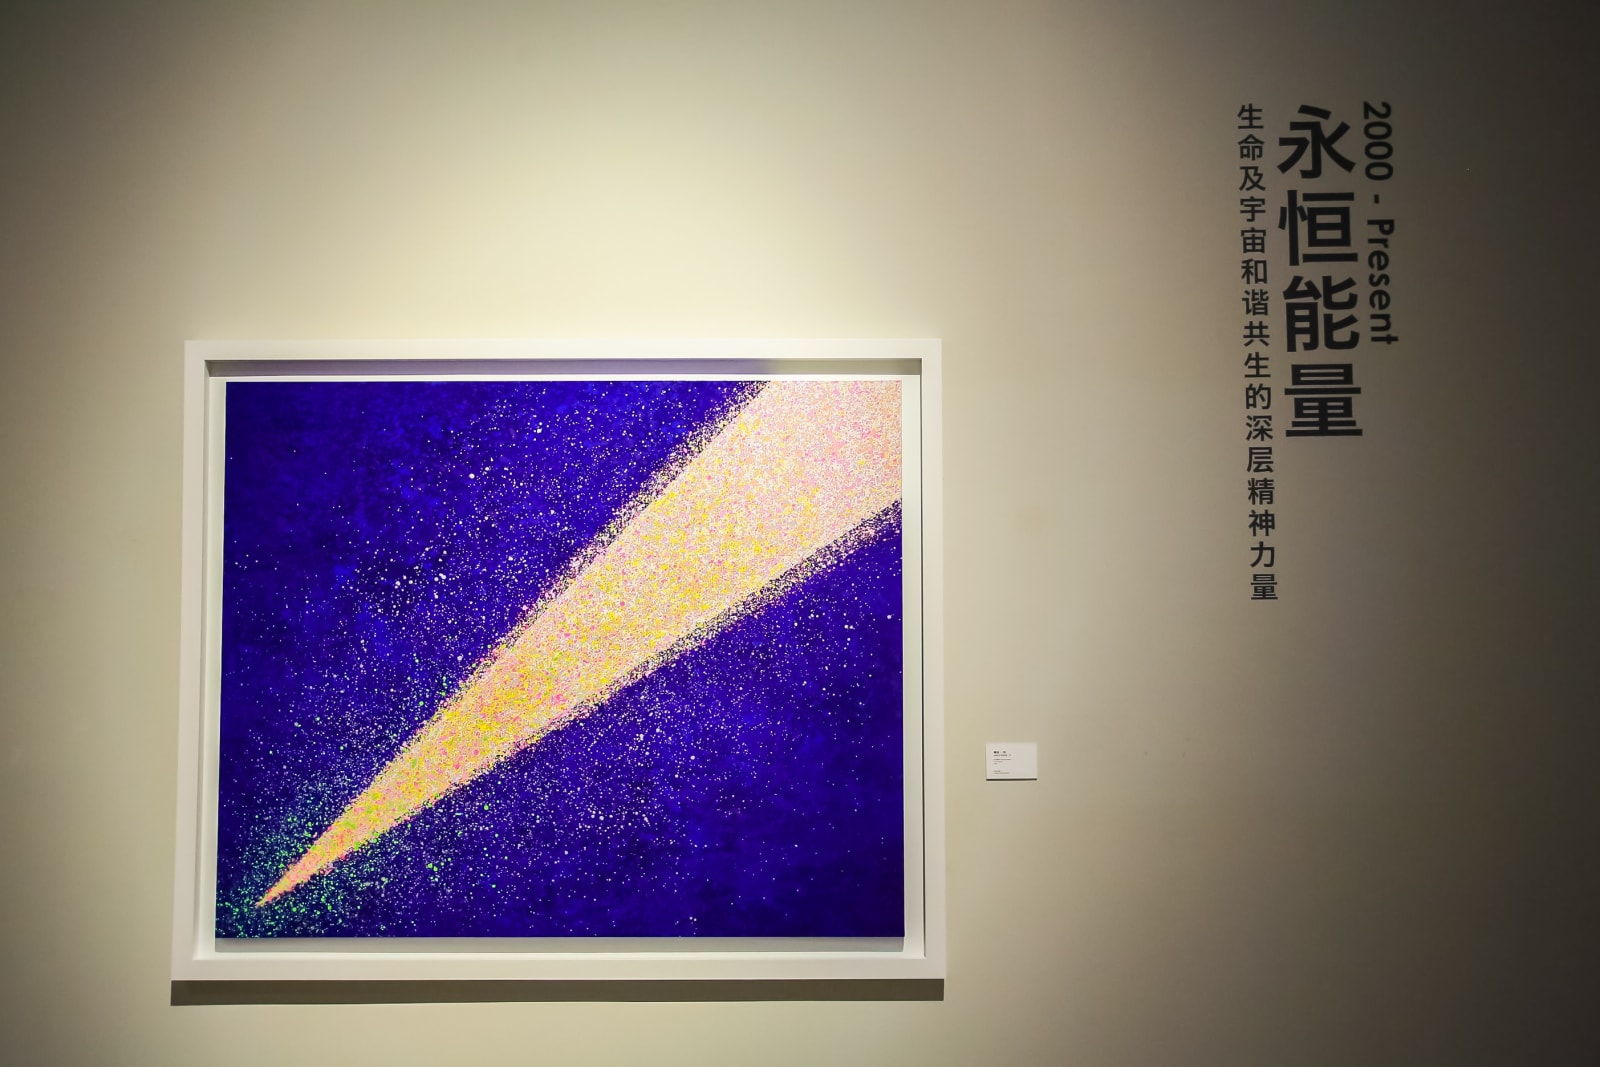 Hsiao Chin Coming Home: Retrospective Exhibition